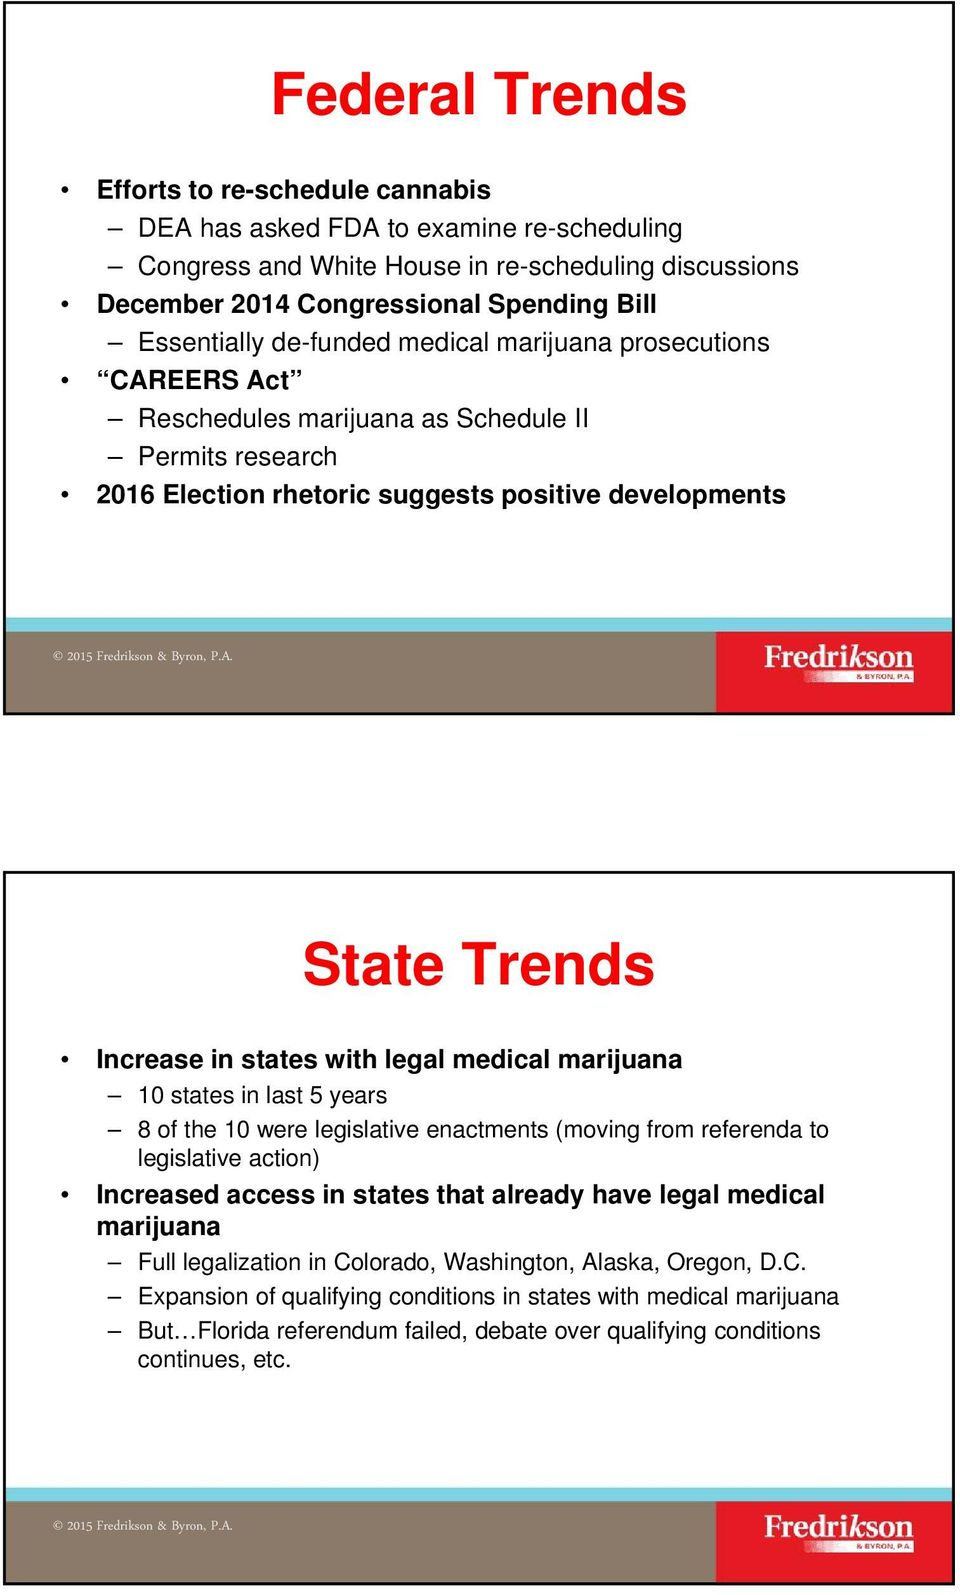 legal medical marijuana 10 states in last 5 years 8 of the 10 were legislative enactments (moving from referenda to legislative action) Increased access in states that already have legal medical